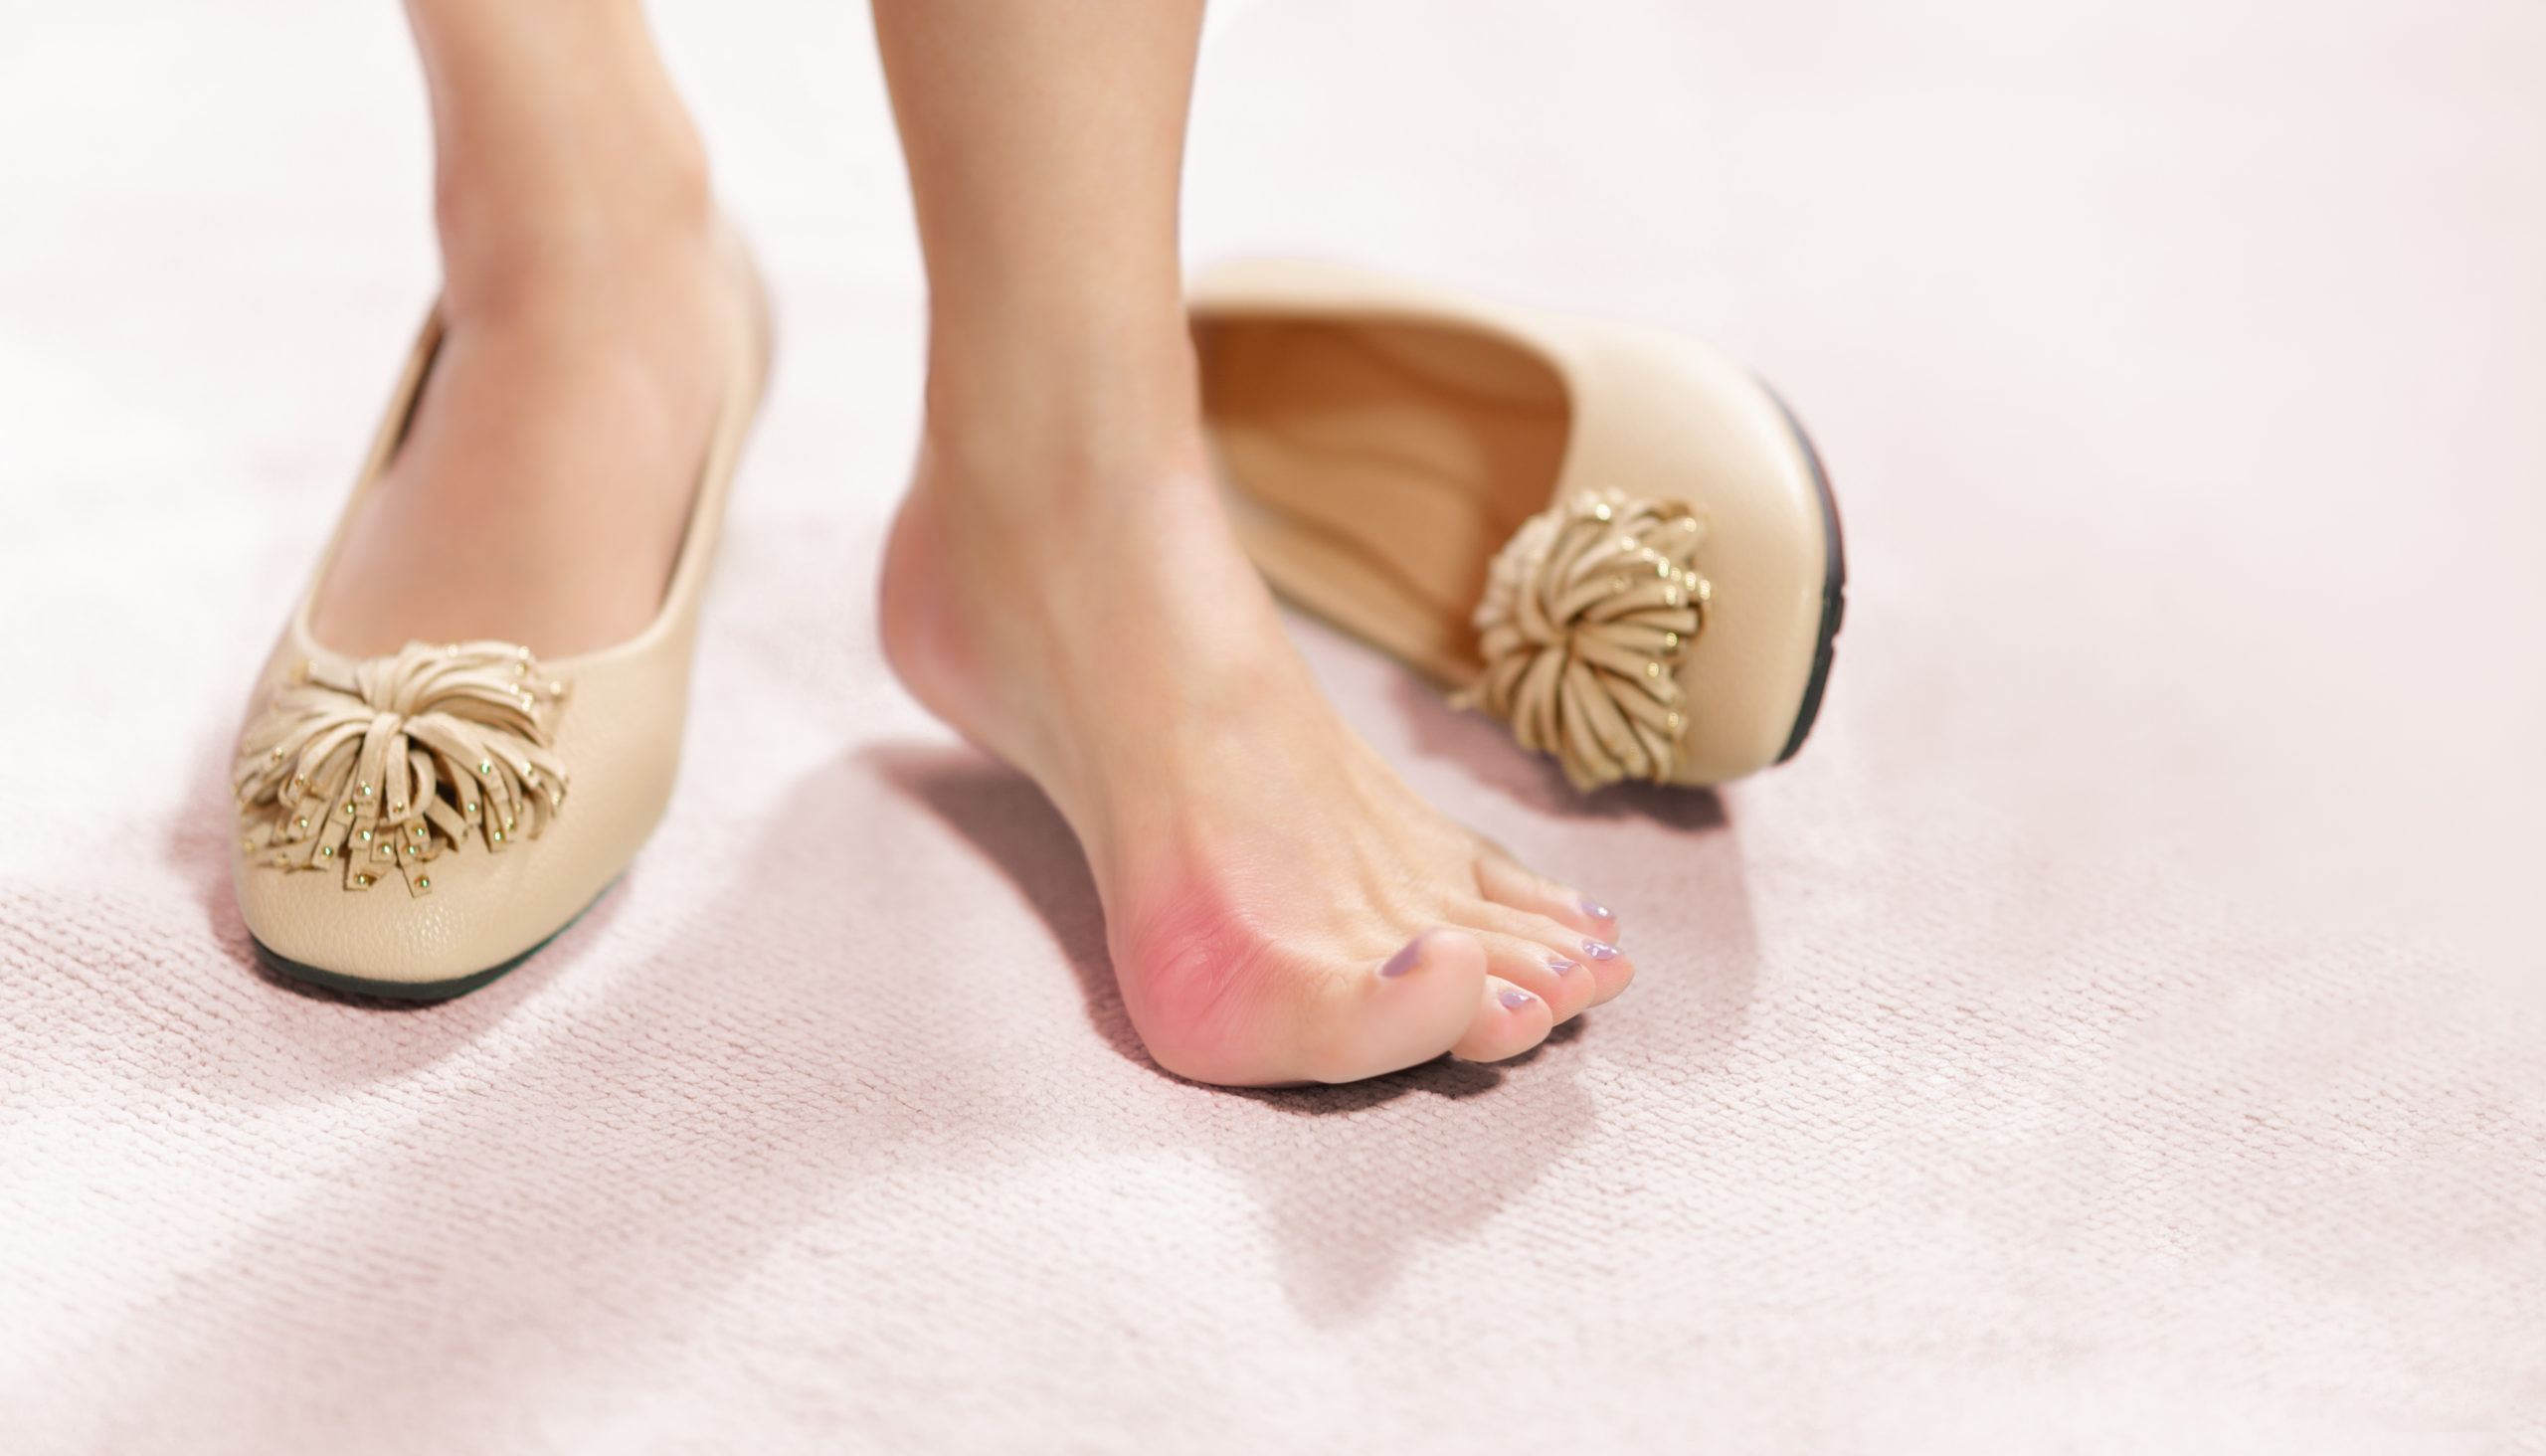 Pain from hammertoe